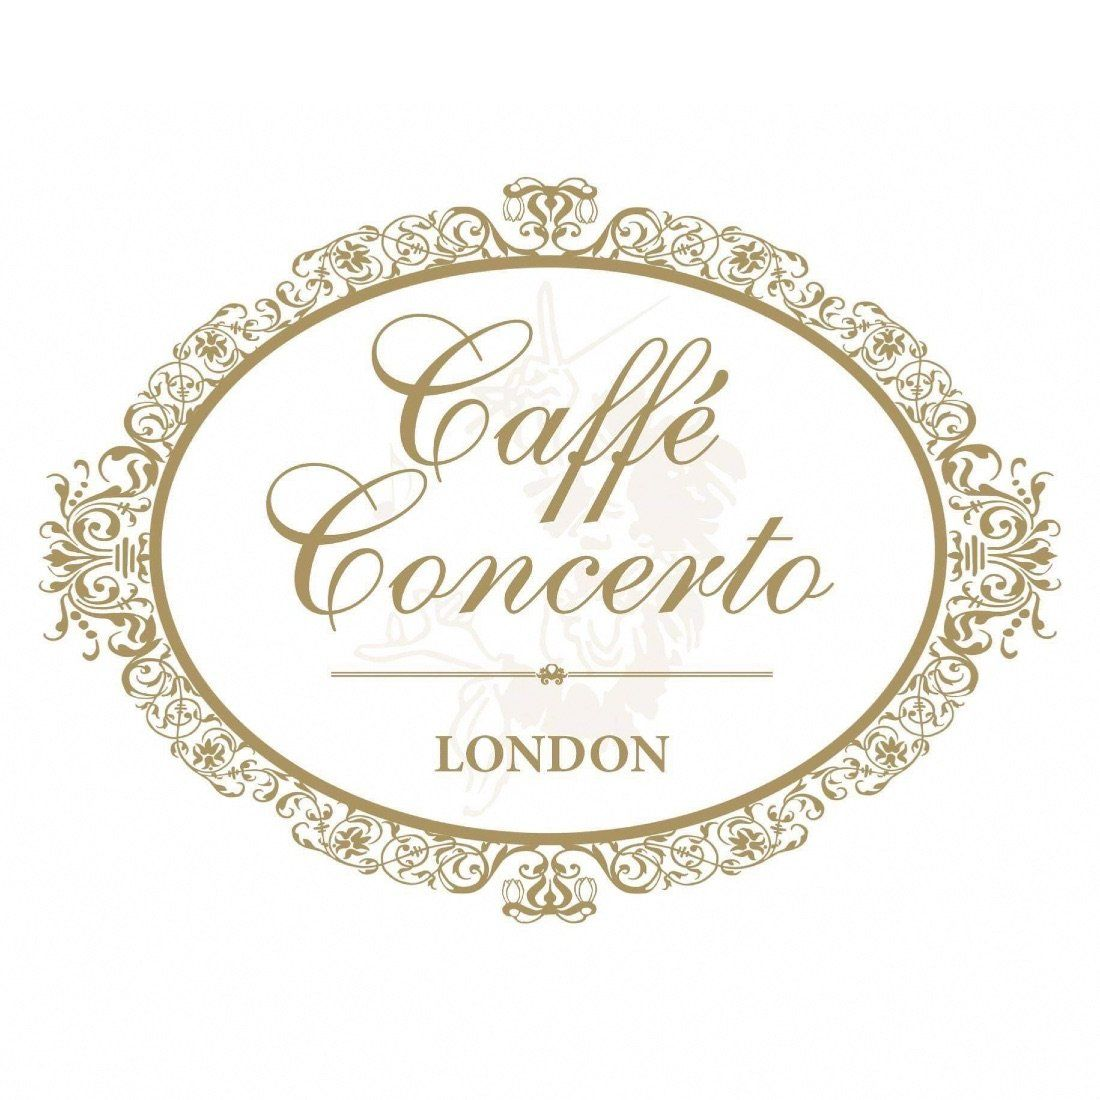 Live music while you dine at The Grand Caffe Concerto